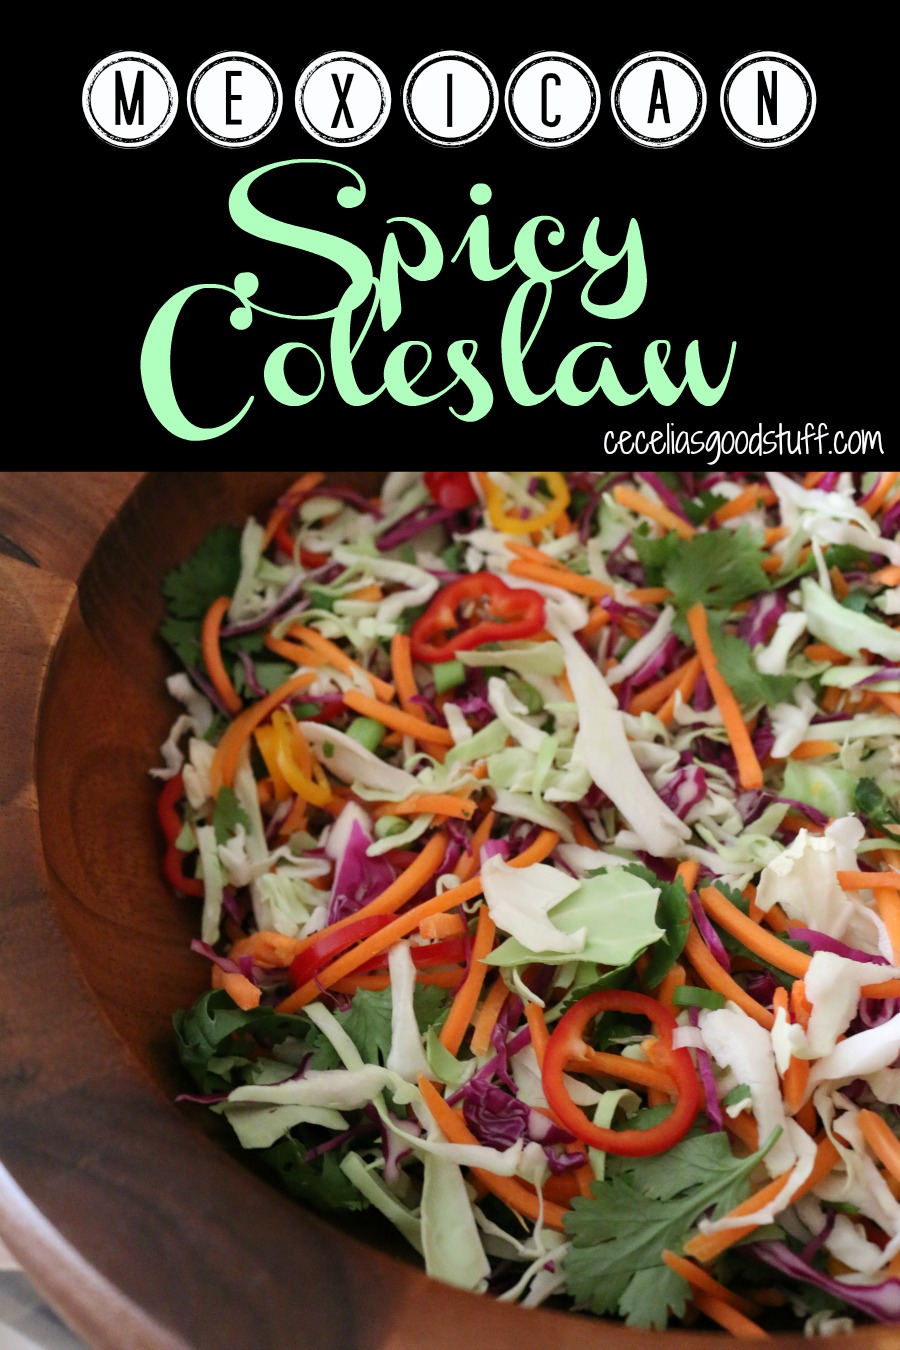 Easy and Healthy Recipe for Mexican Spicy Coleslaw with Red Chile Vinaigrette.